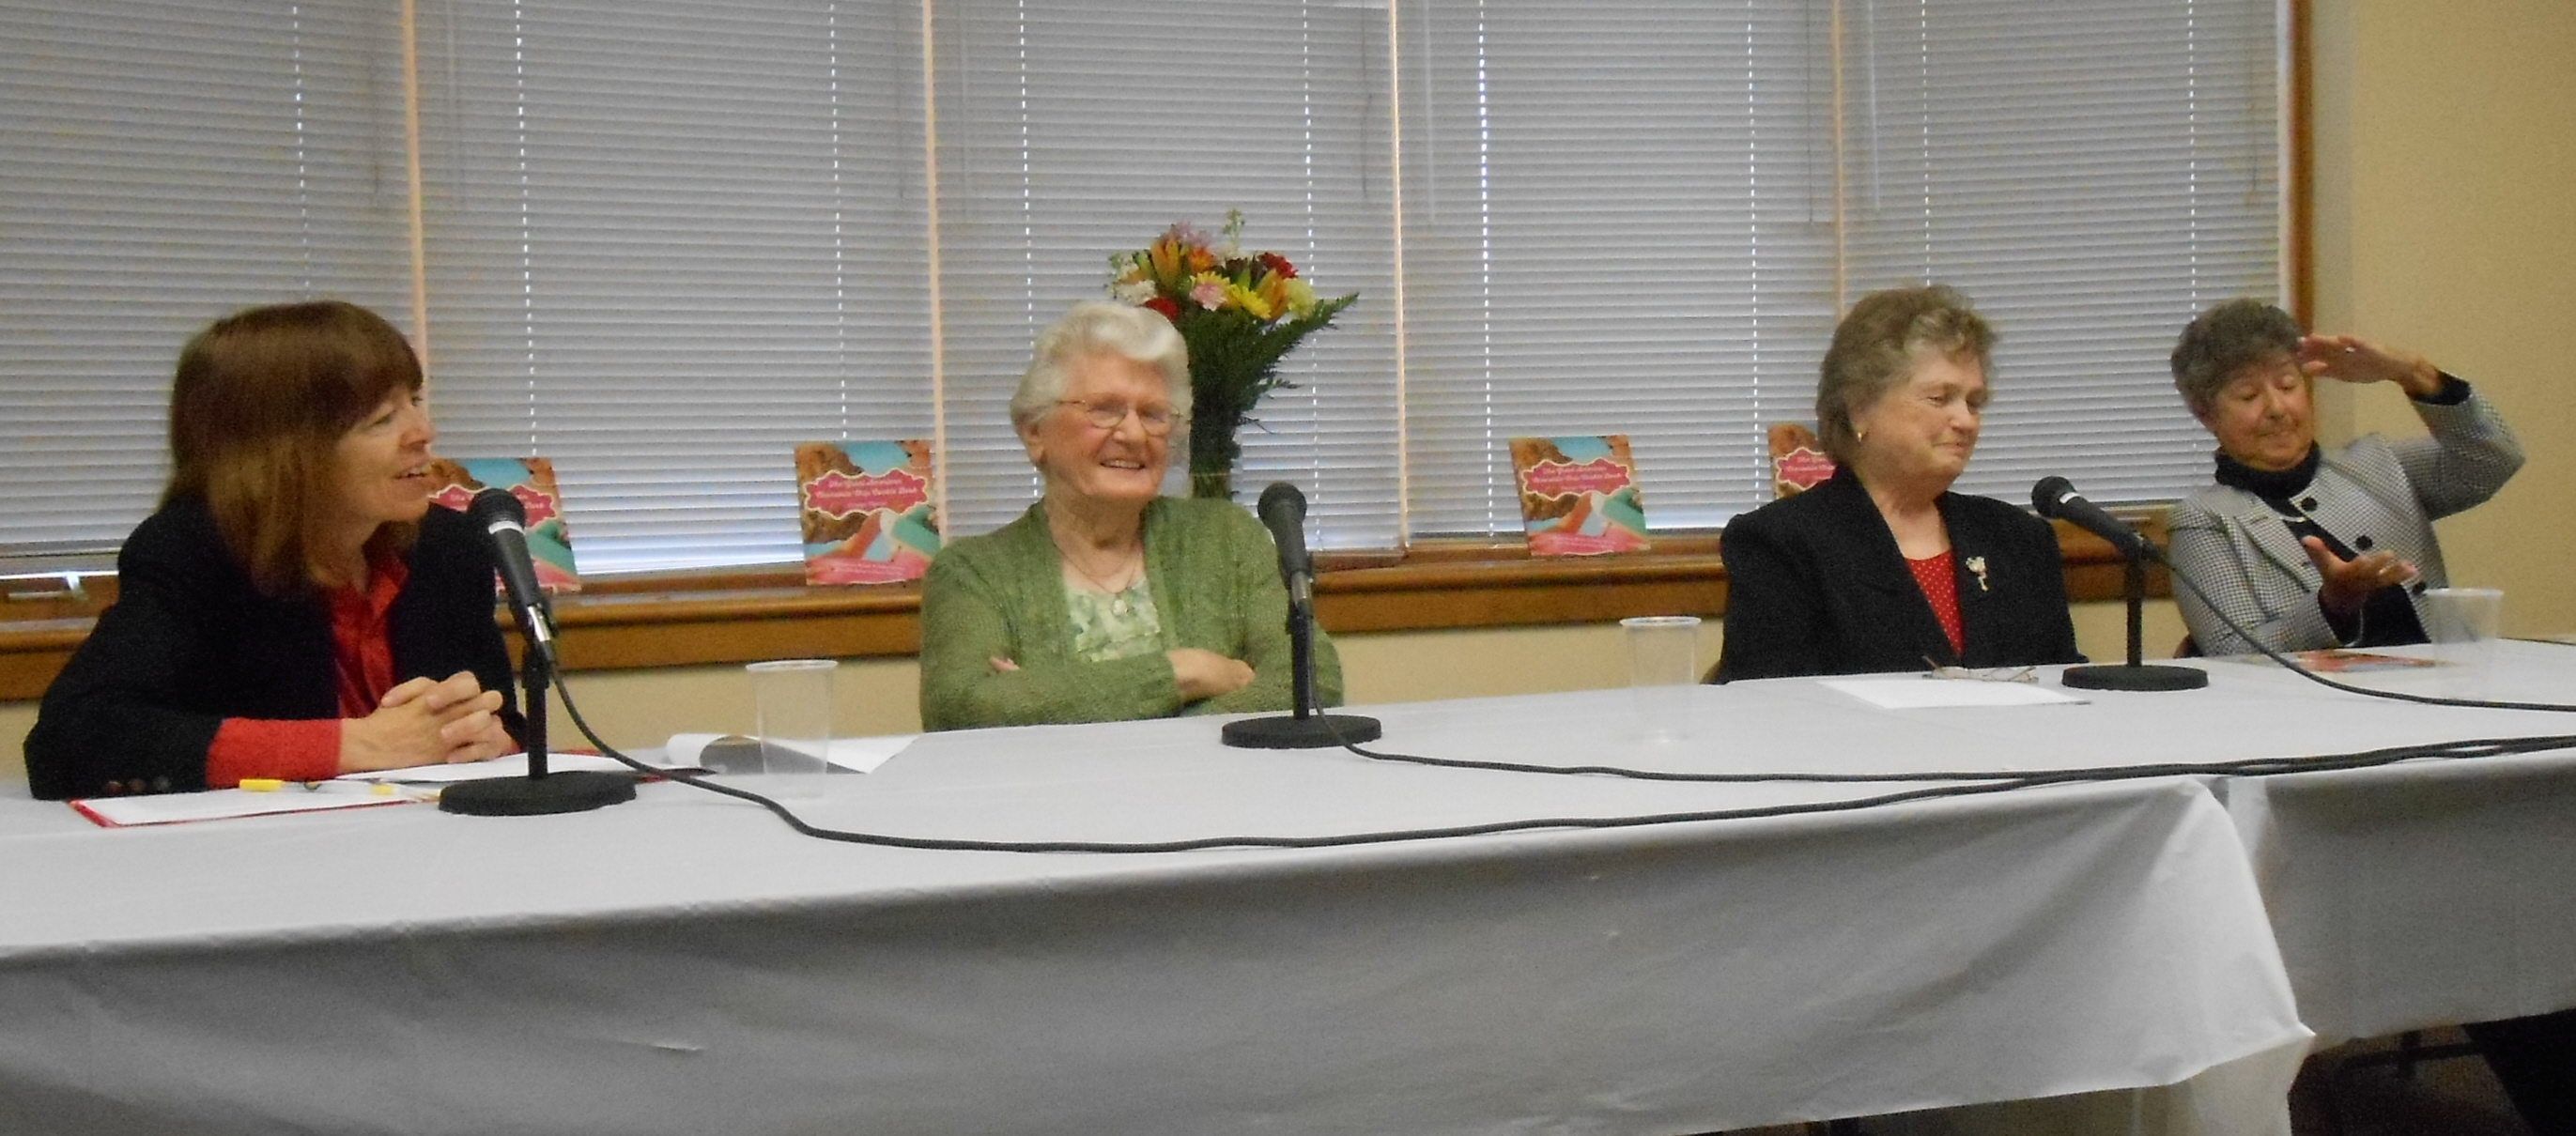 Saturday's panel (L to R): Me and ex-Toll House waitresses Marguerite Gaquin, June O'Leary and Carol Cavanagh